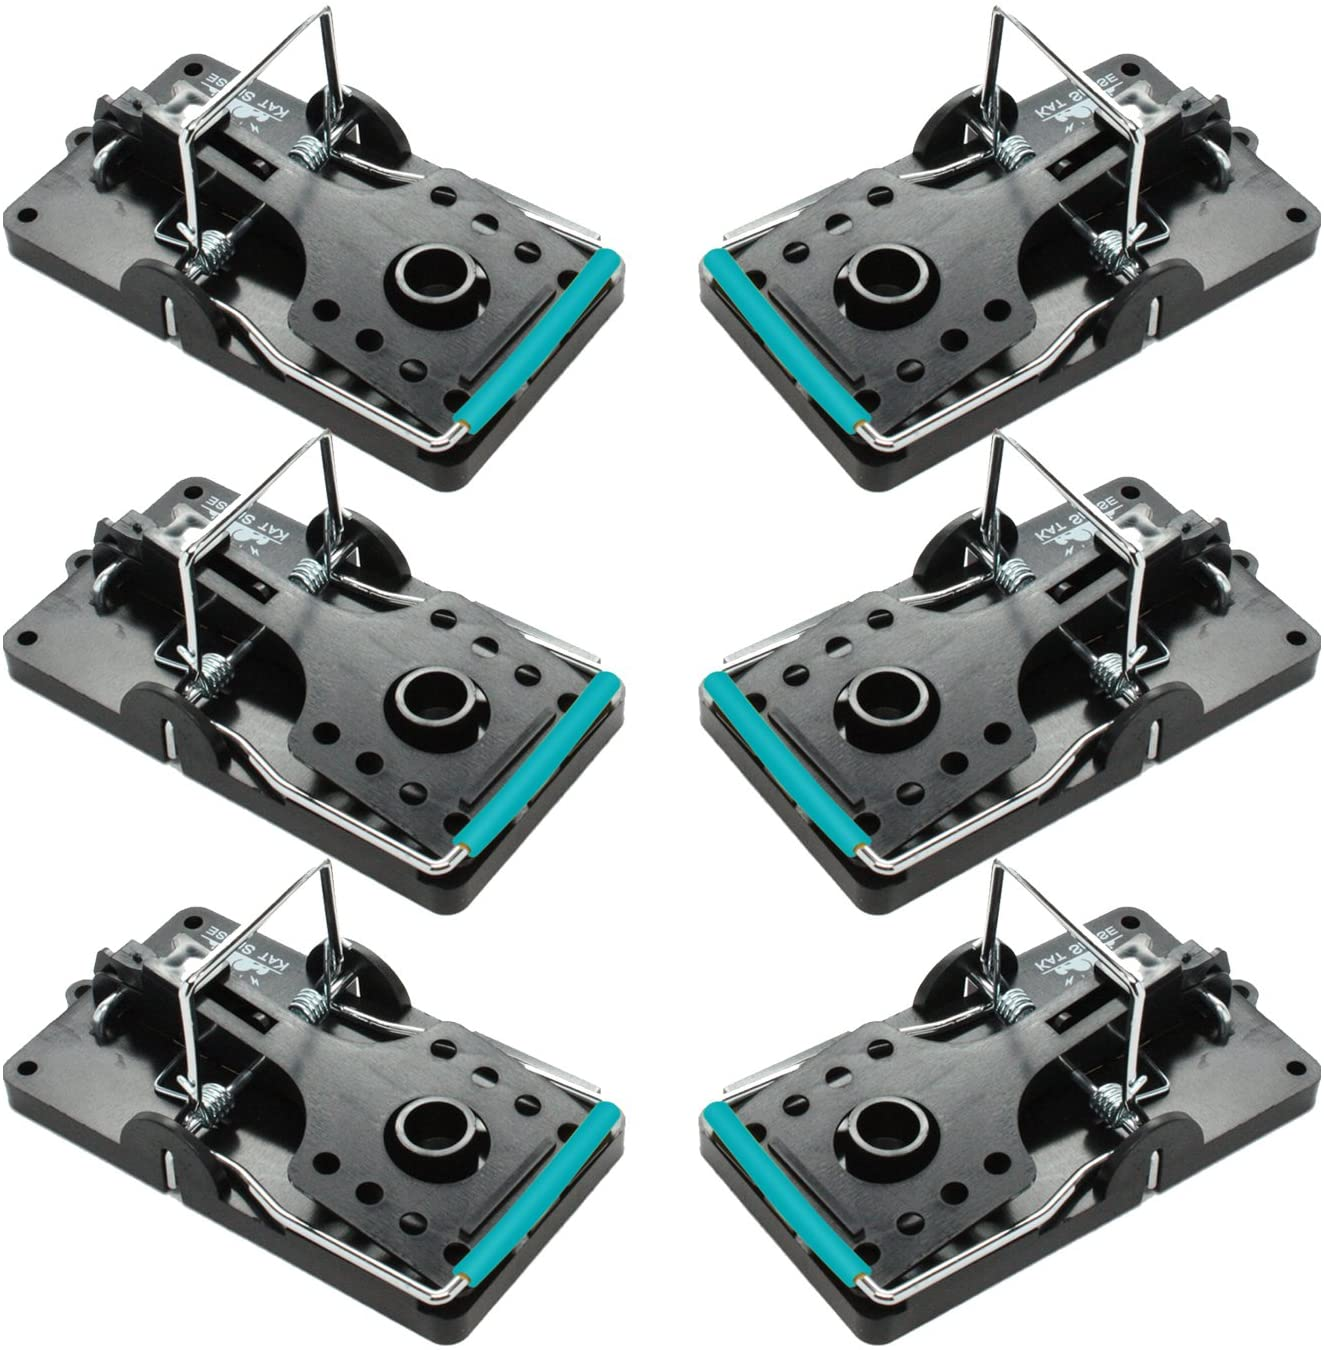 Kat Sense Large Rat Traps, Set of 6, Reusable Pest Control Solutions for Trapping Against Mouse, Chipmunk, and Squirrel. Instant Humane Kill Rodent Snap Trap That Work